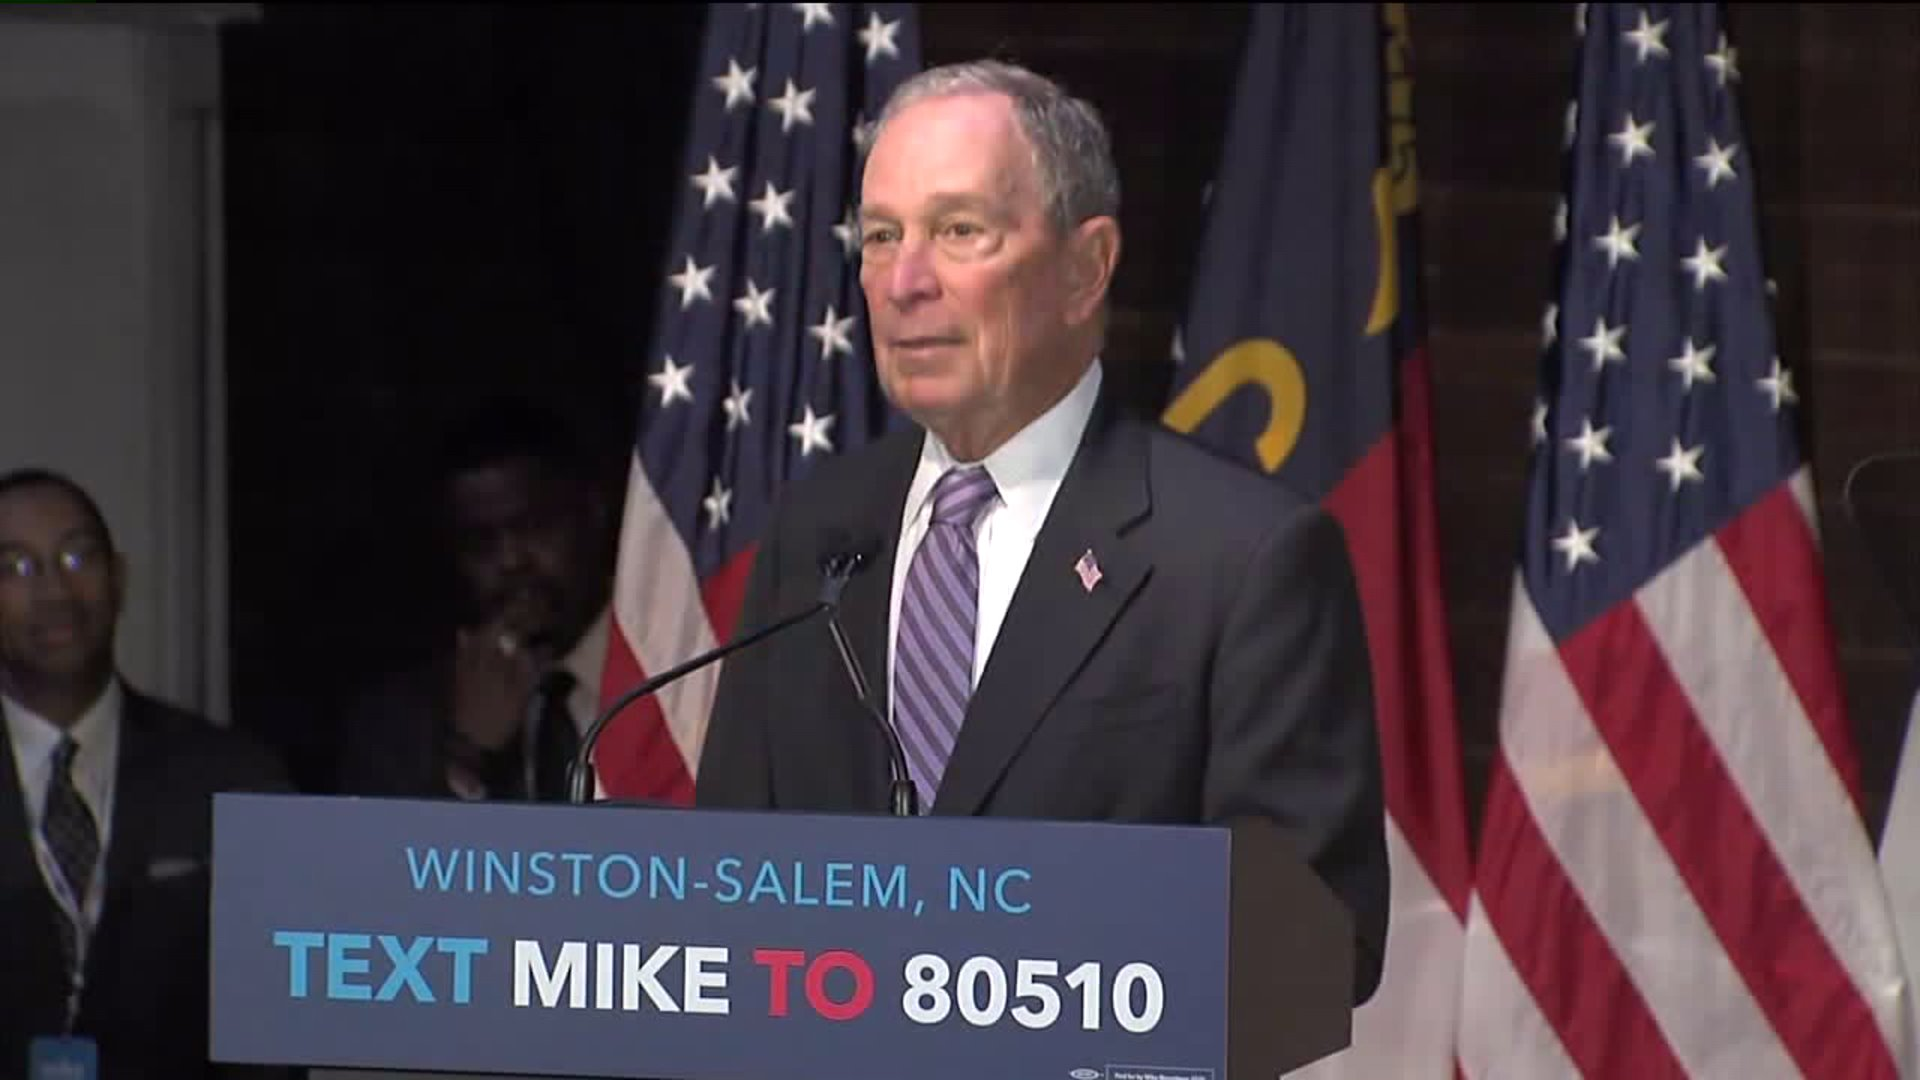 Michael Bloomberg speaks at Footnote Coffee & Cocktails in Winston-Salem on Feb. 13.